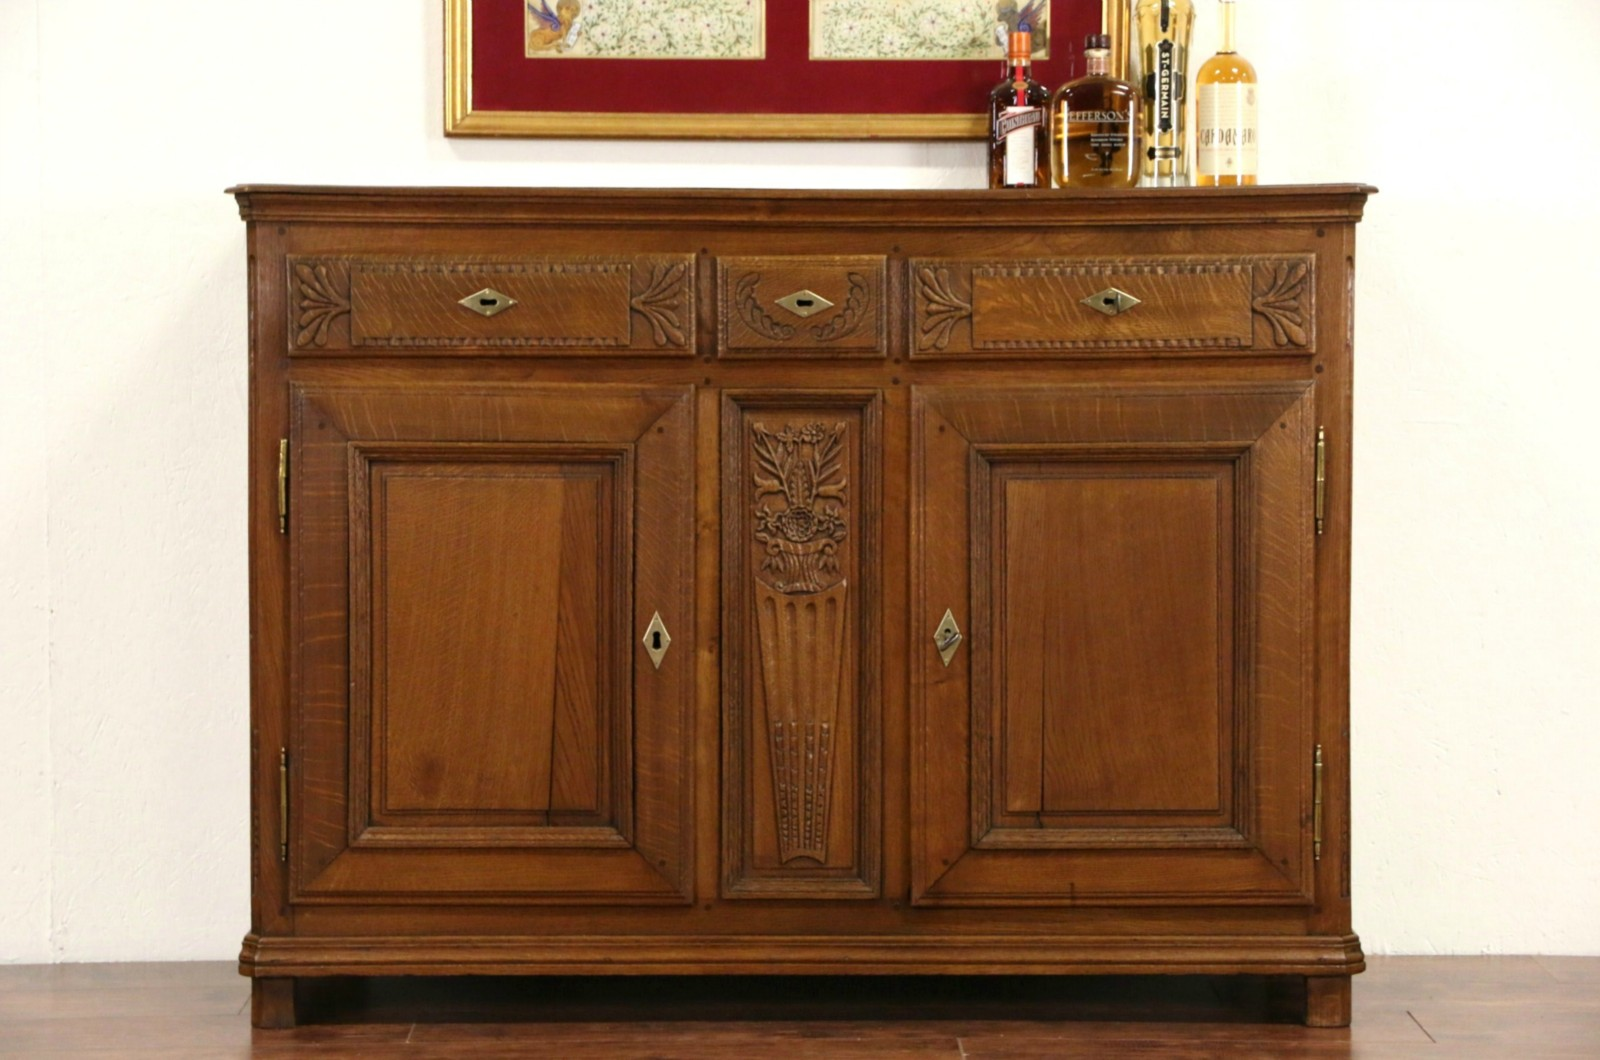 SOLD Country French 1820s Antique Oak Server Sideboard